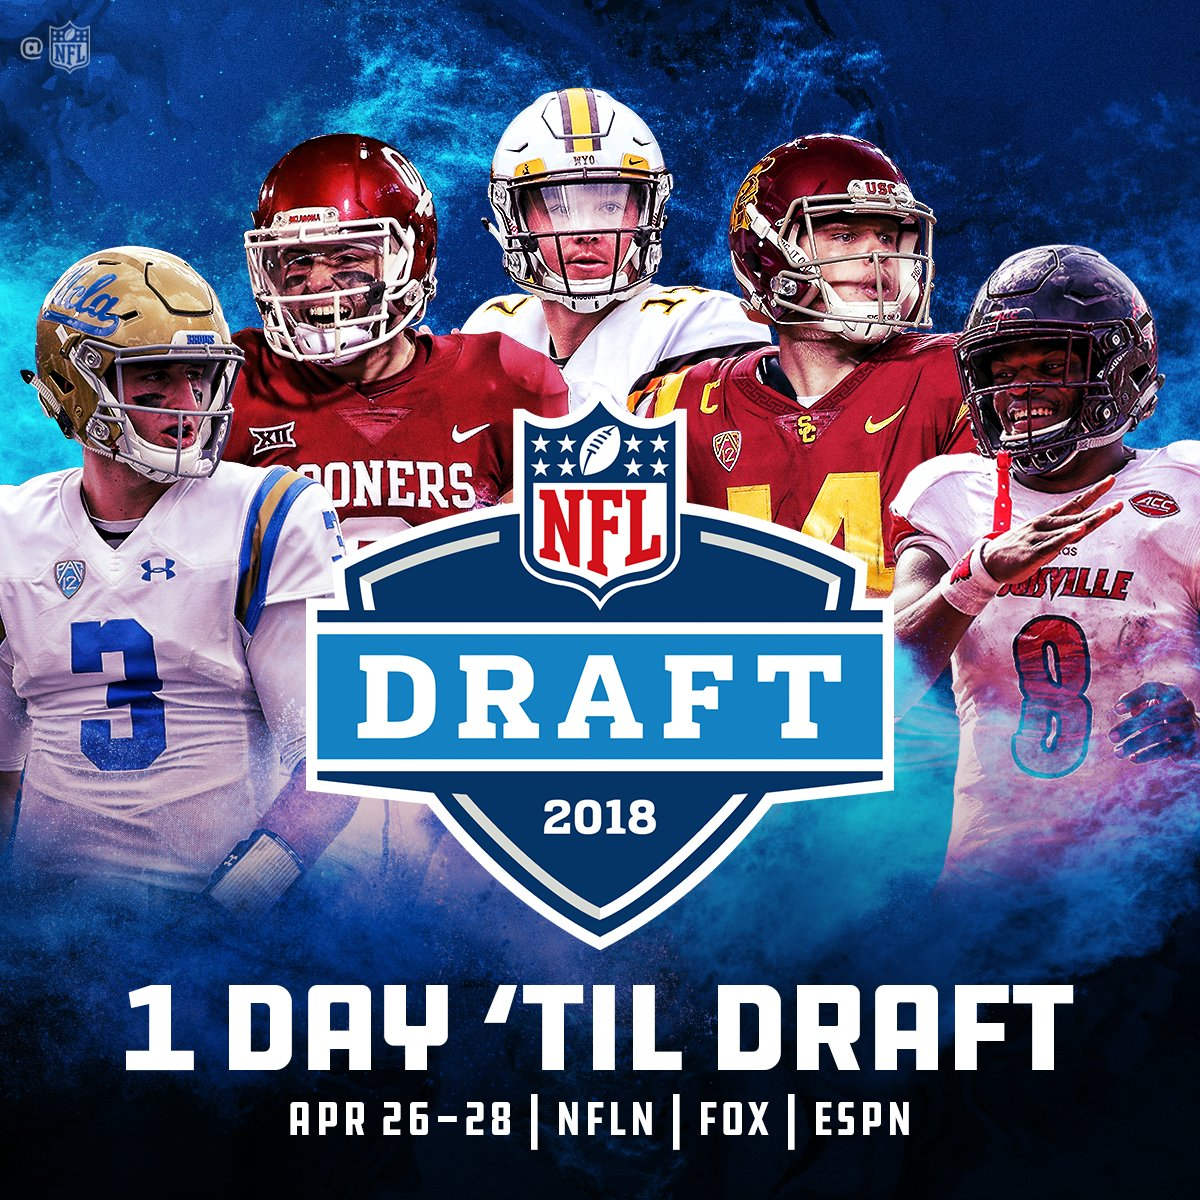 Only 24 hours until the @NFLDraft begins! ��  2018 #NFLDraft starts tomorrow on NFLN/FOX/ESPN https://t.co/YsScmjCKFc